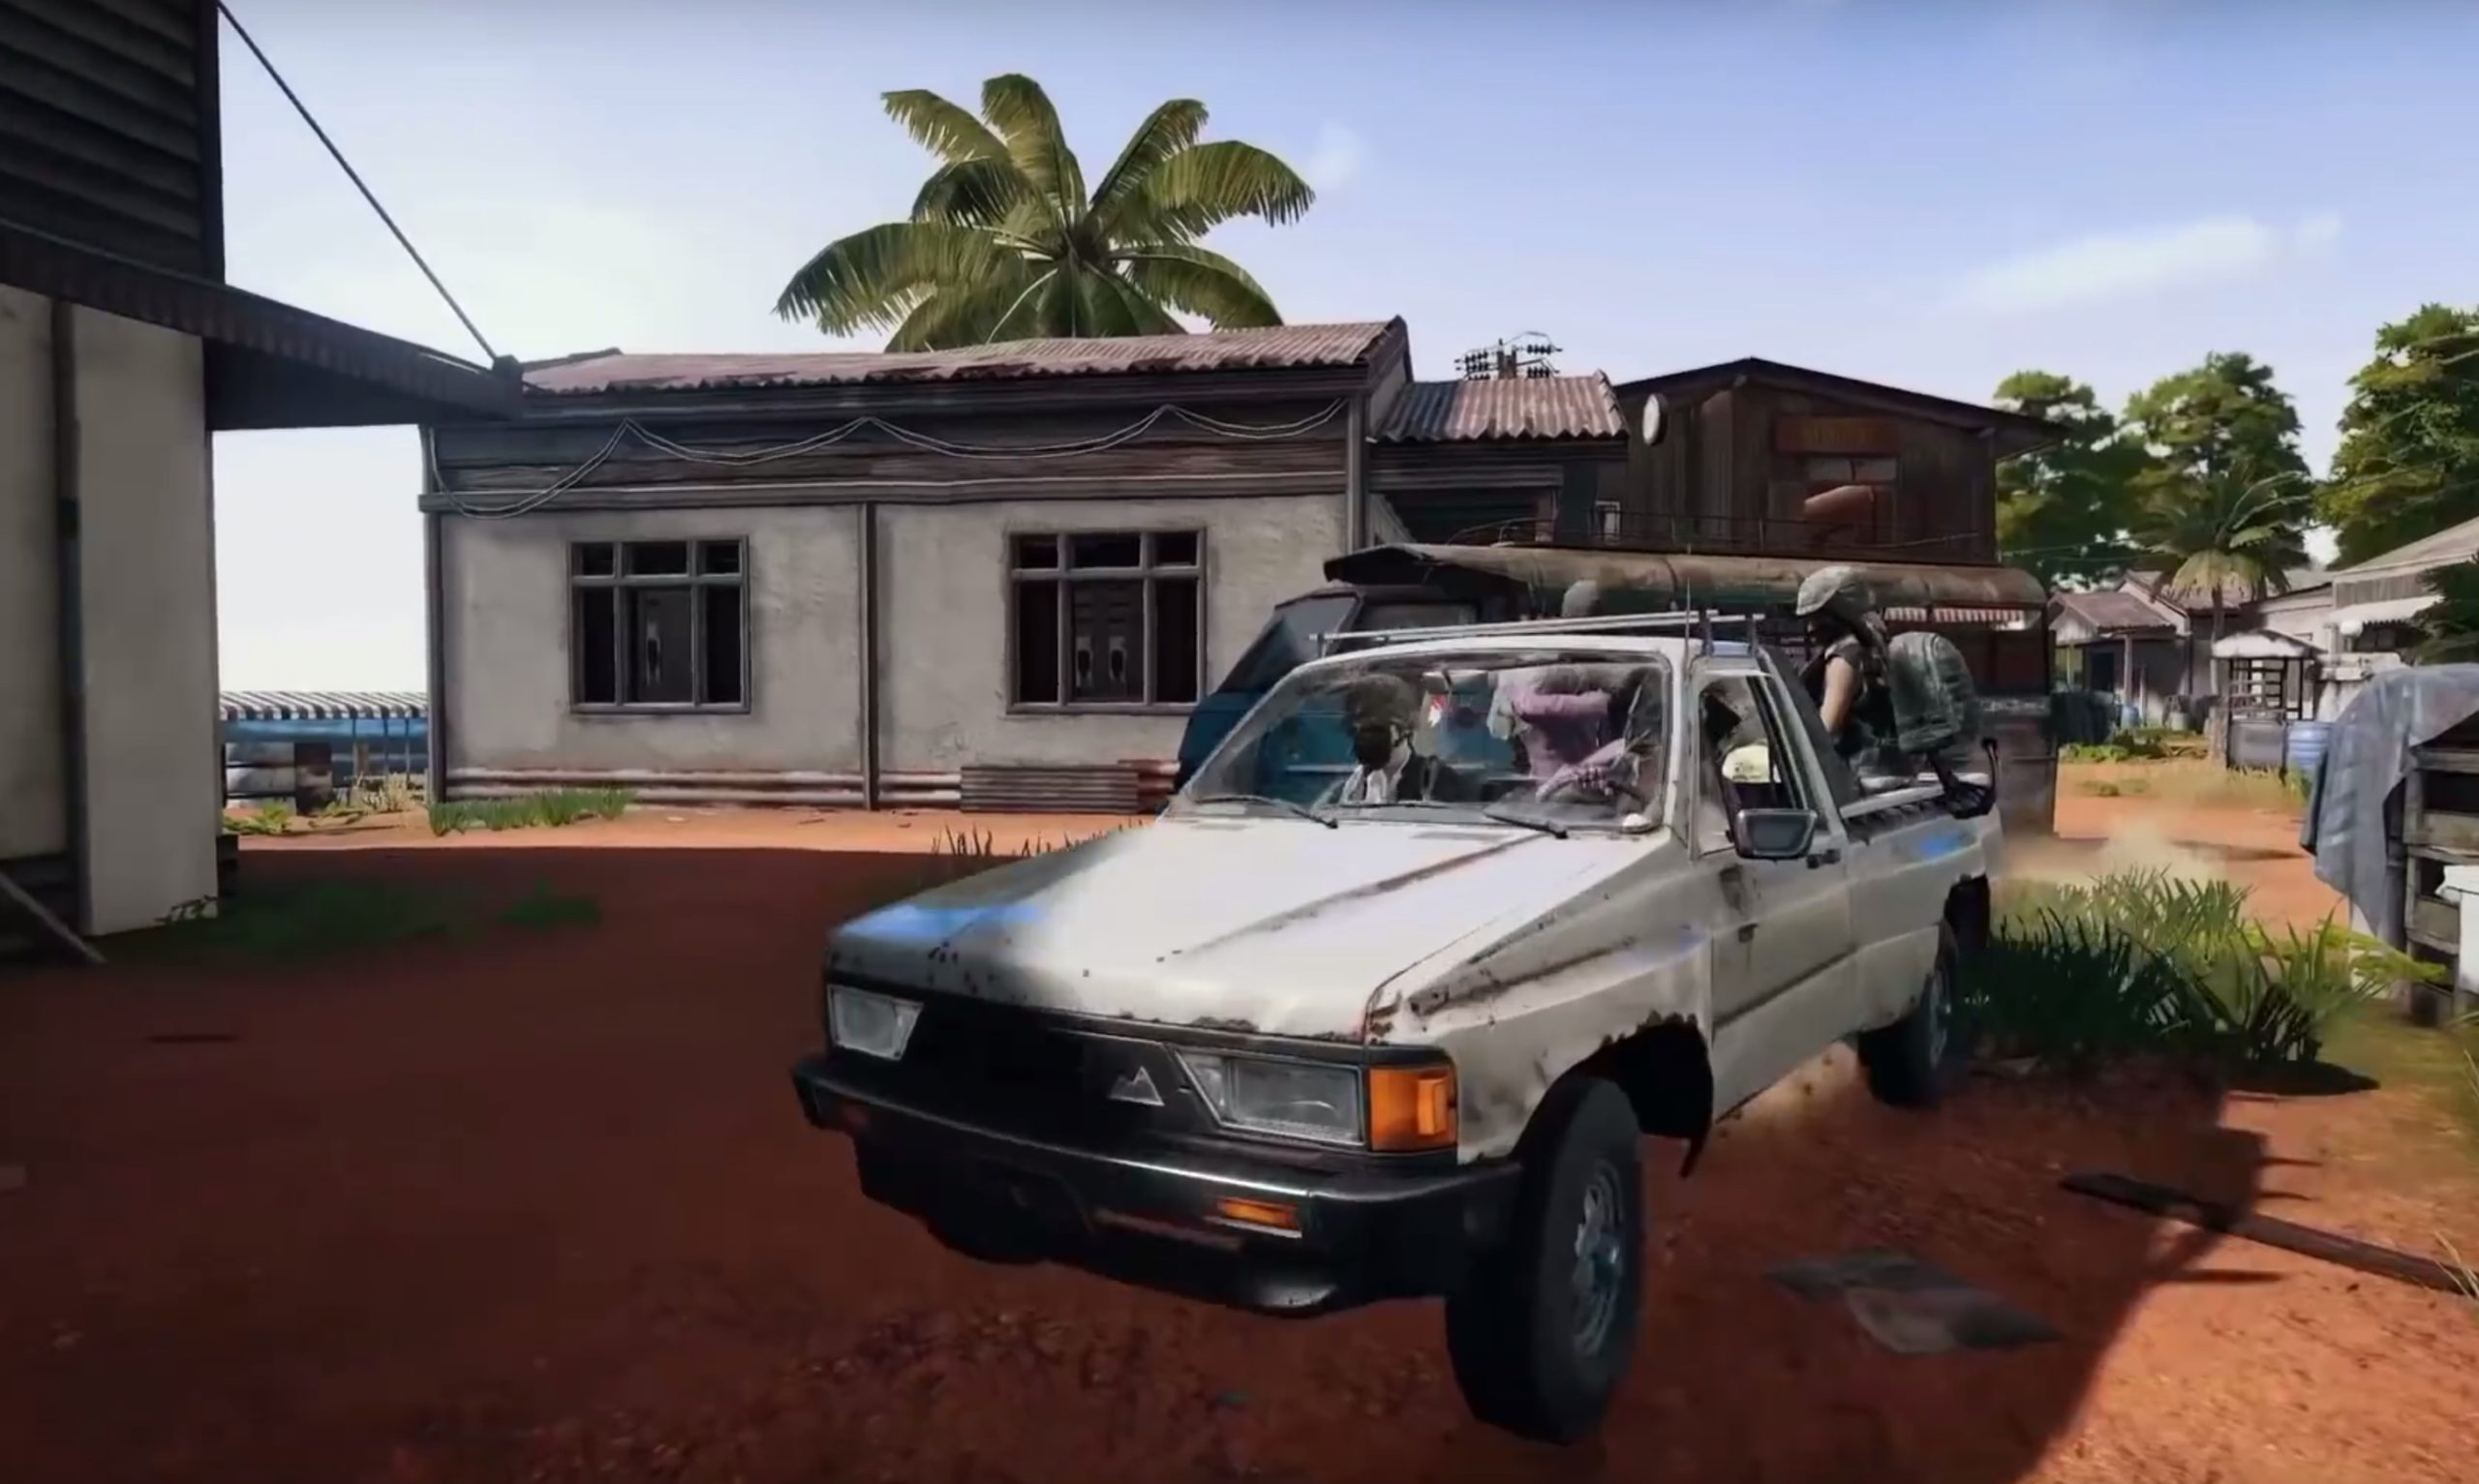 New Pickup Truck and Rifle Coming to Sanhok